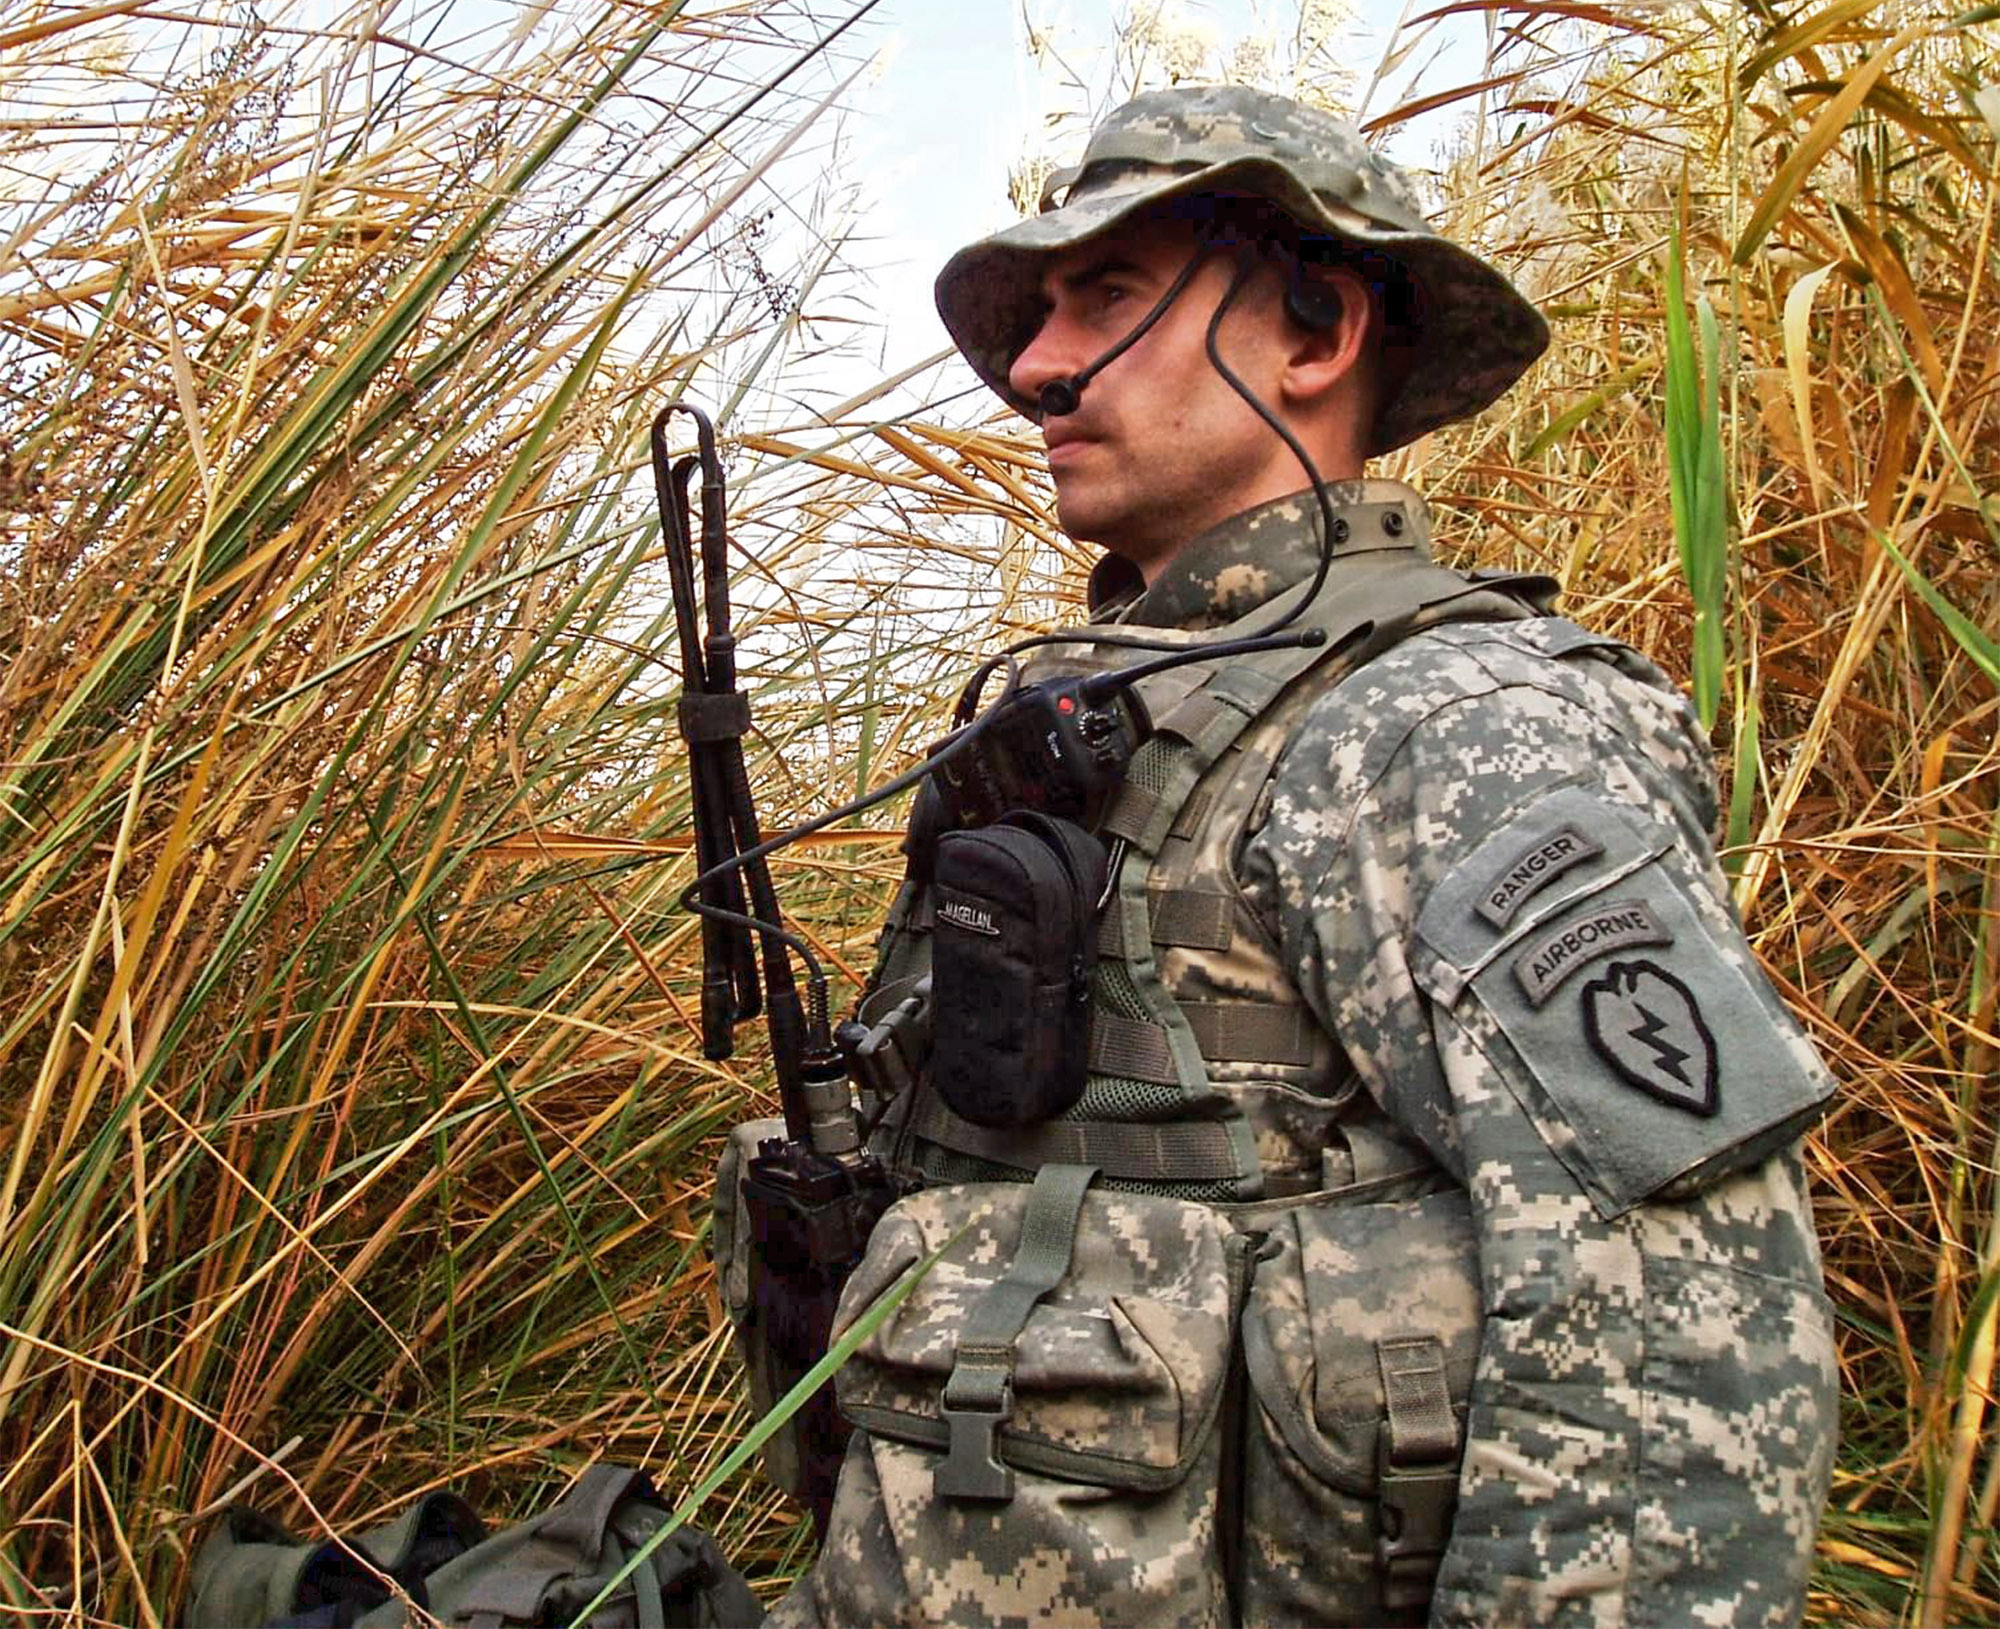 U.S. Army First Lieutenant Thomas M. Martin, 27, of Ward, Arkansas, assigned to the 1st Squadron, 40th Cavalry Regiment, 4th Brigade Combat Team (Airborne), 25th Infantry Division, based in Fort Richardson, Alaska, died on October 14, 2007 in Al Busayifi, Iraq, of wounds suffered when insurgents attacked his unit with small arms fire. He is survived by his parents, Edmund and Candis Martin; sisters Sarah Hood, Becky Martin, and Laura Martin; fiancee, Erika Noyes; and grandmother, E. Jean Martin.